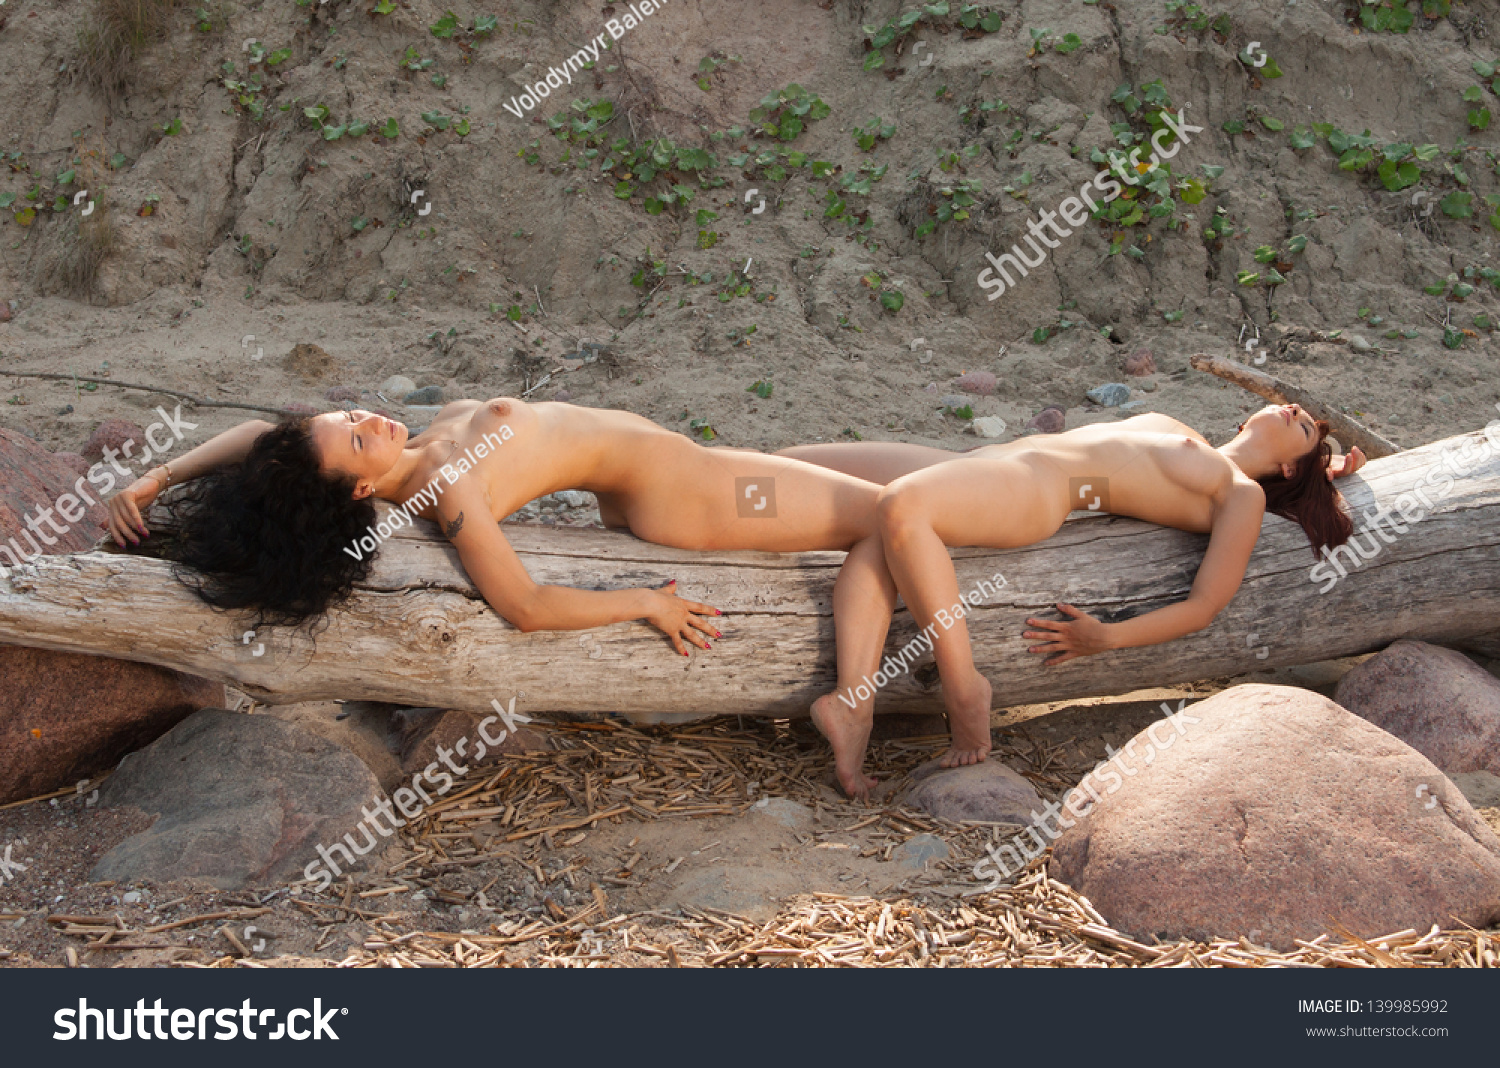 Phrase very Naked women sunbathing on beach can help